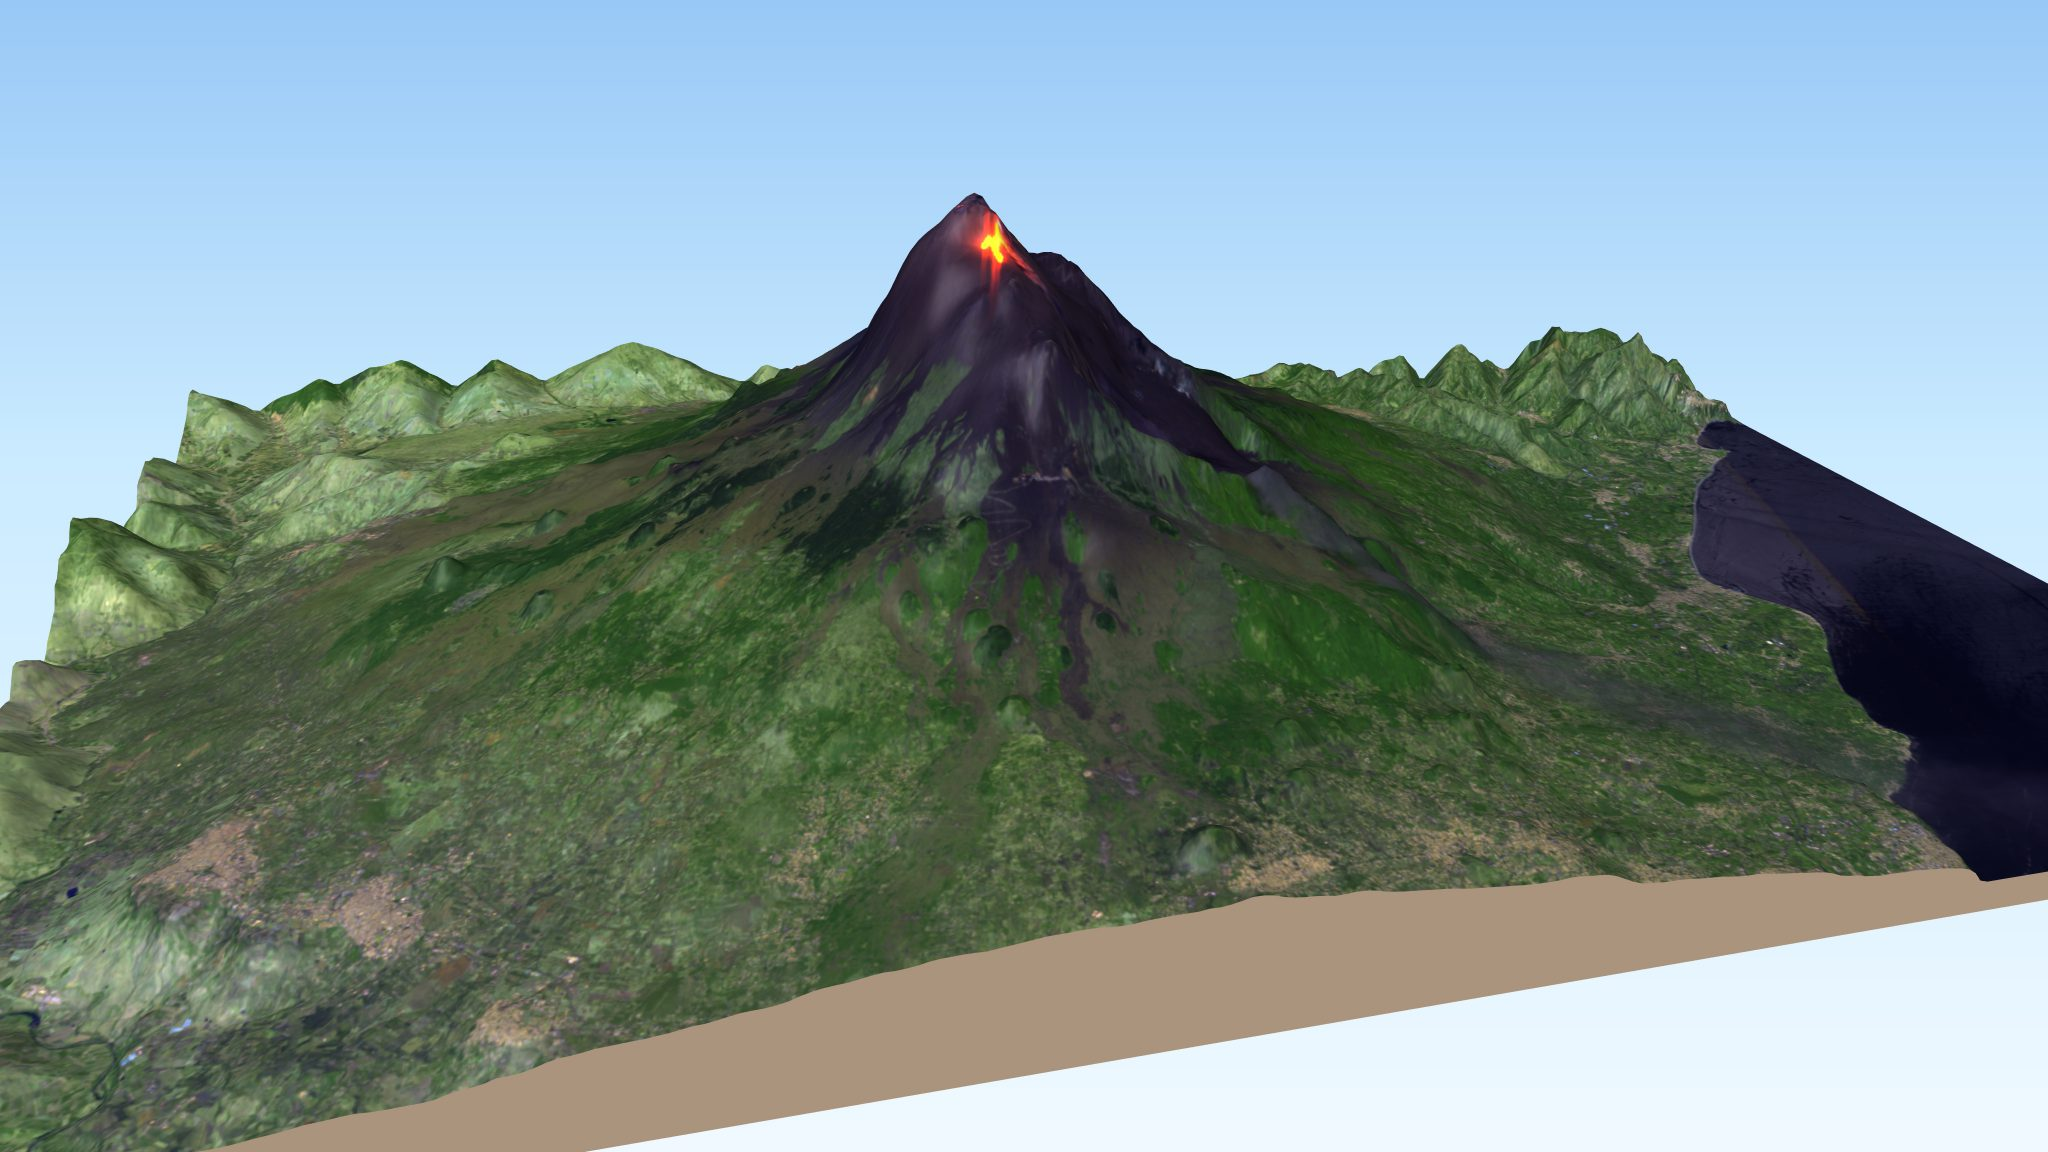 desc:Mount Etna Volcano 3D showing lava flows, based on a Sentinel-2 image from July 27th, 2019